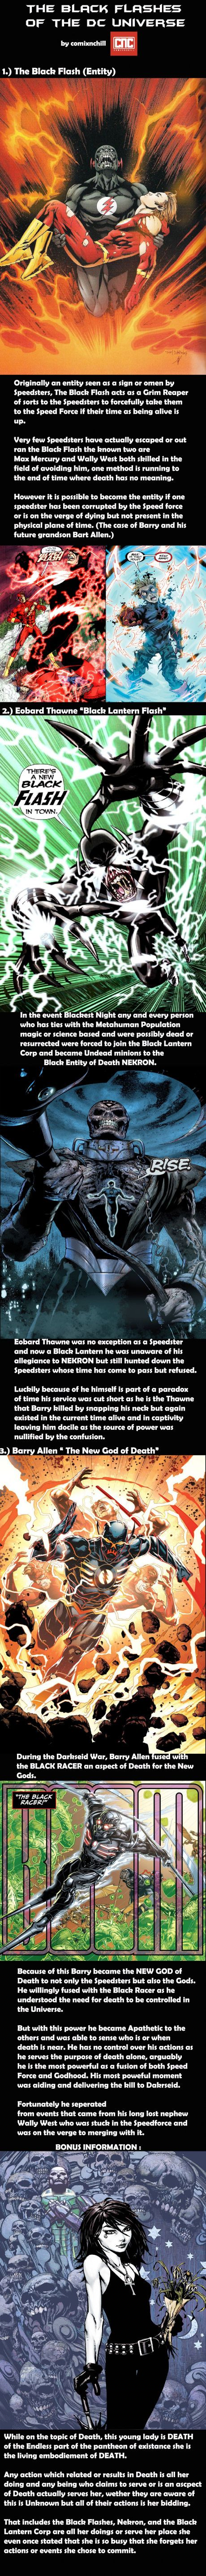 Lets learn about the BLACK FLASHES, the Grim Reapers for the Speedsters of the DC Universe.